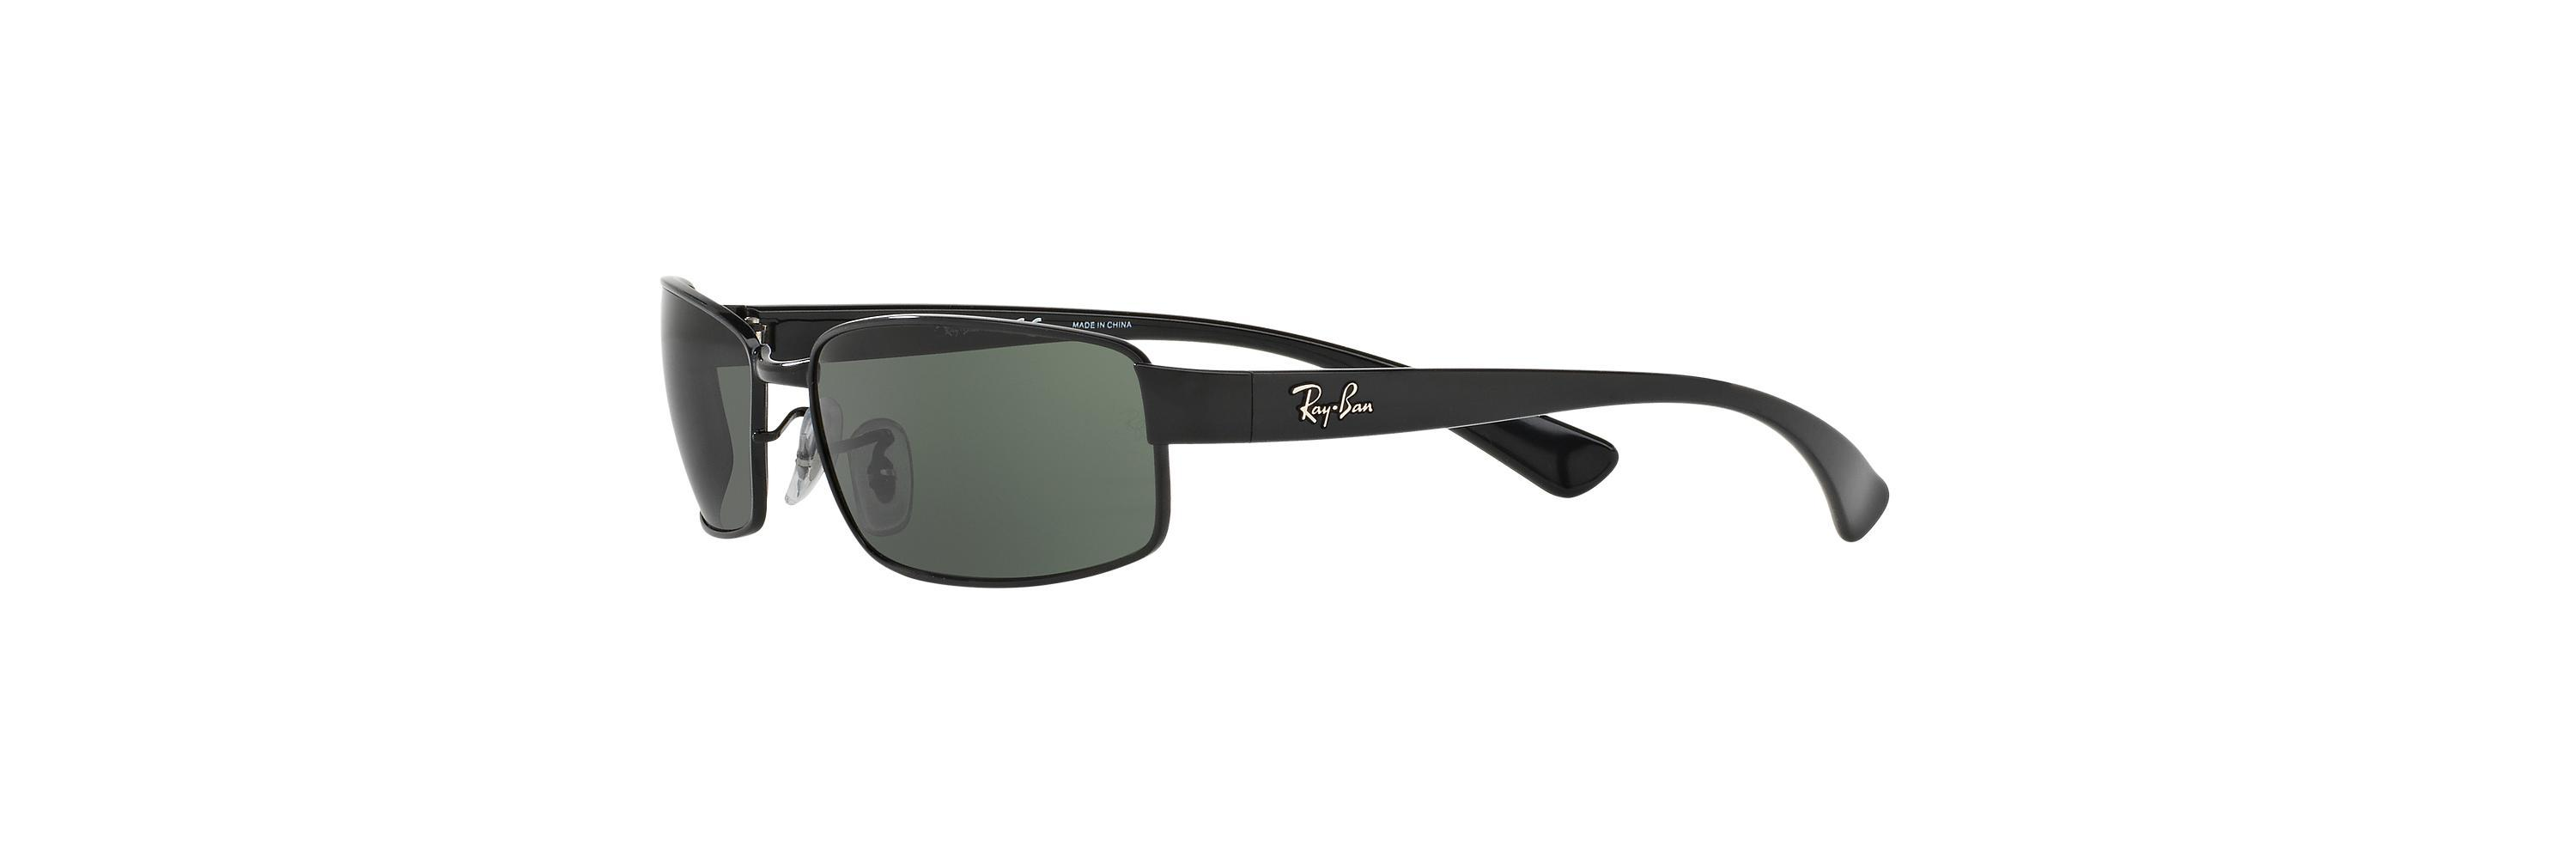 1155f3bffb5 Ray Ban 3364 62 « One More Soul